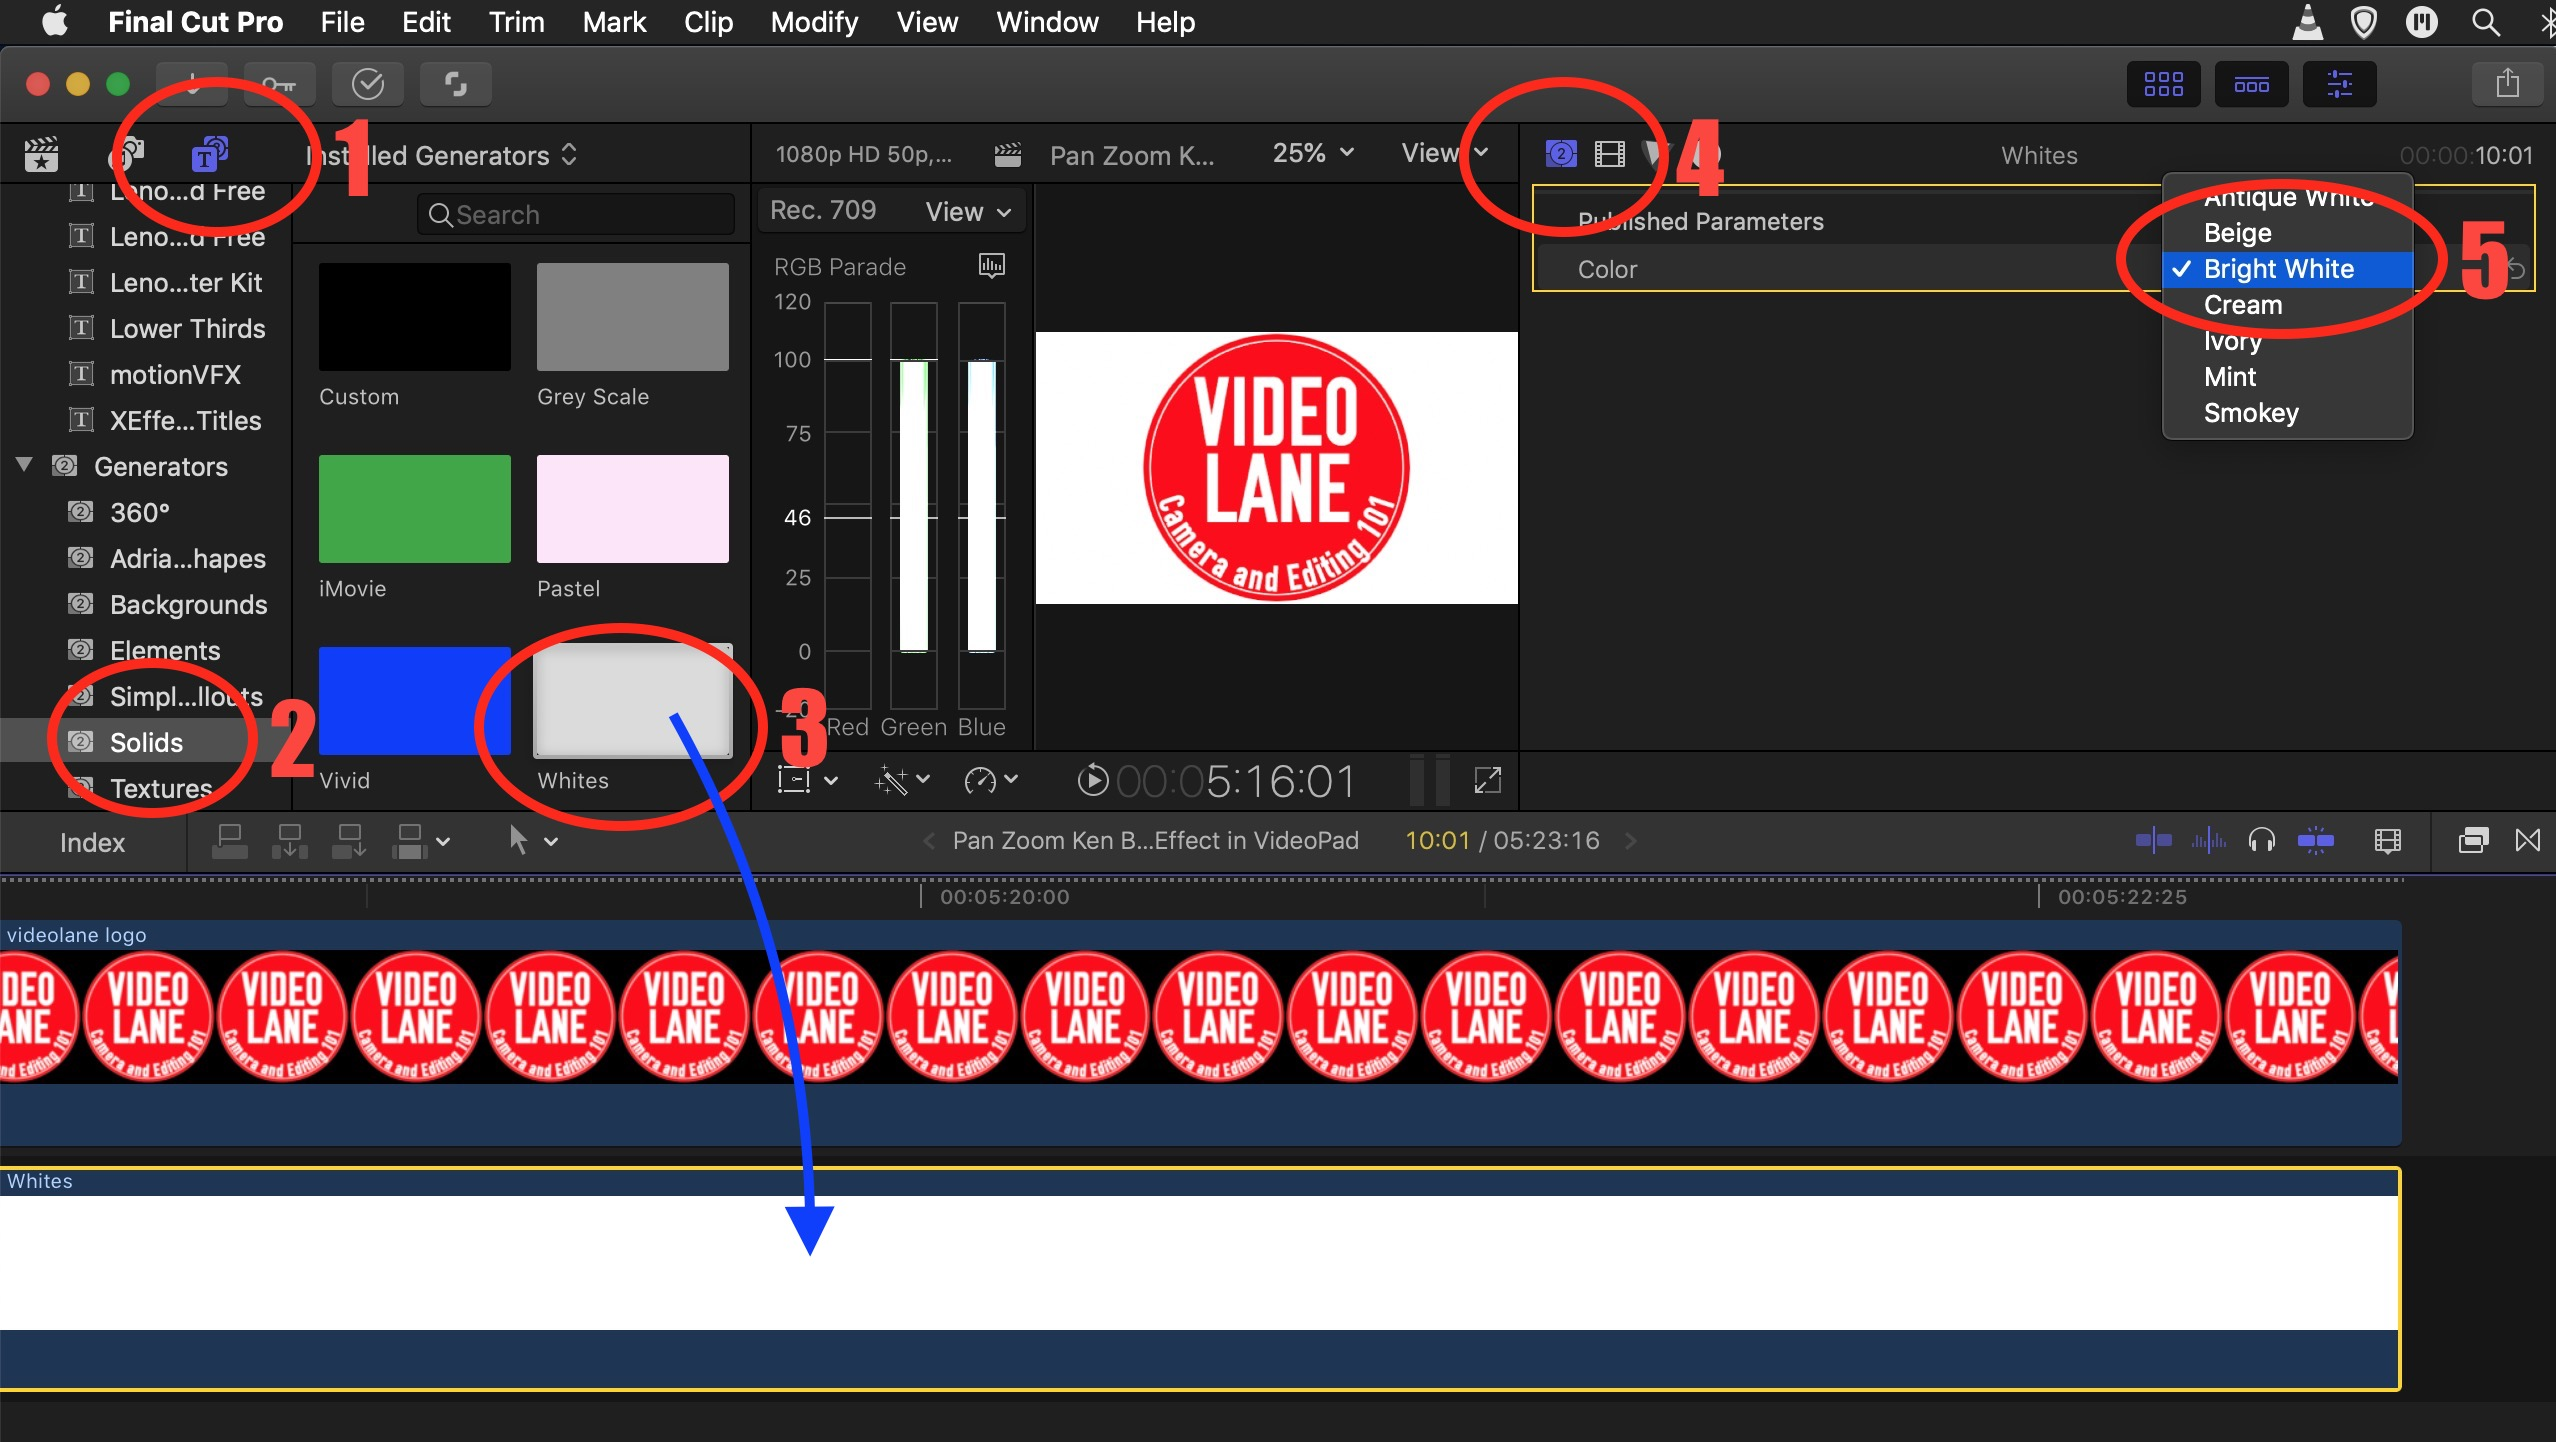 How to Add a White Background in Final Cut Pro X - VIDEOLANE ⏩